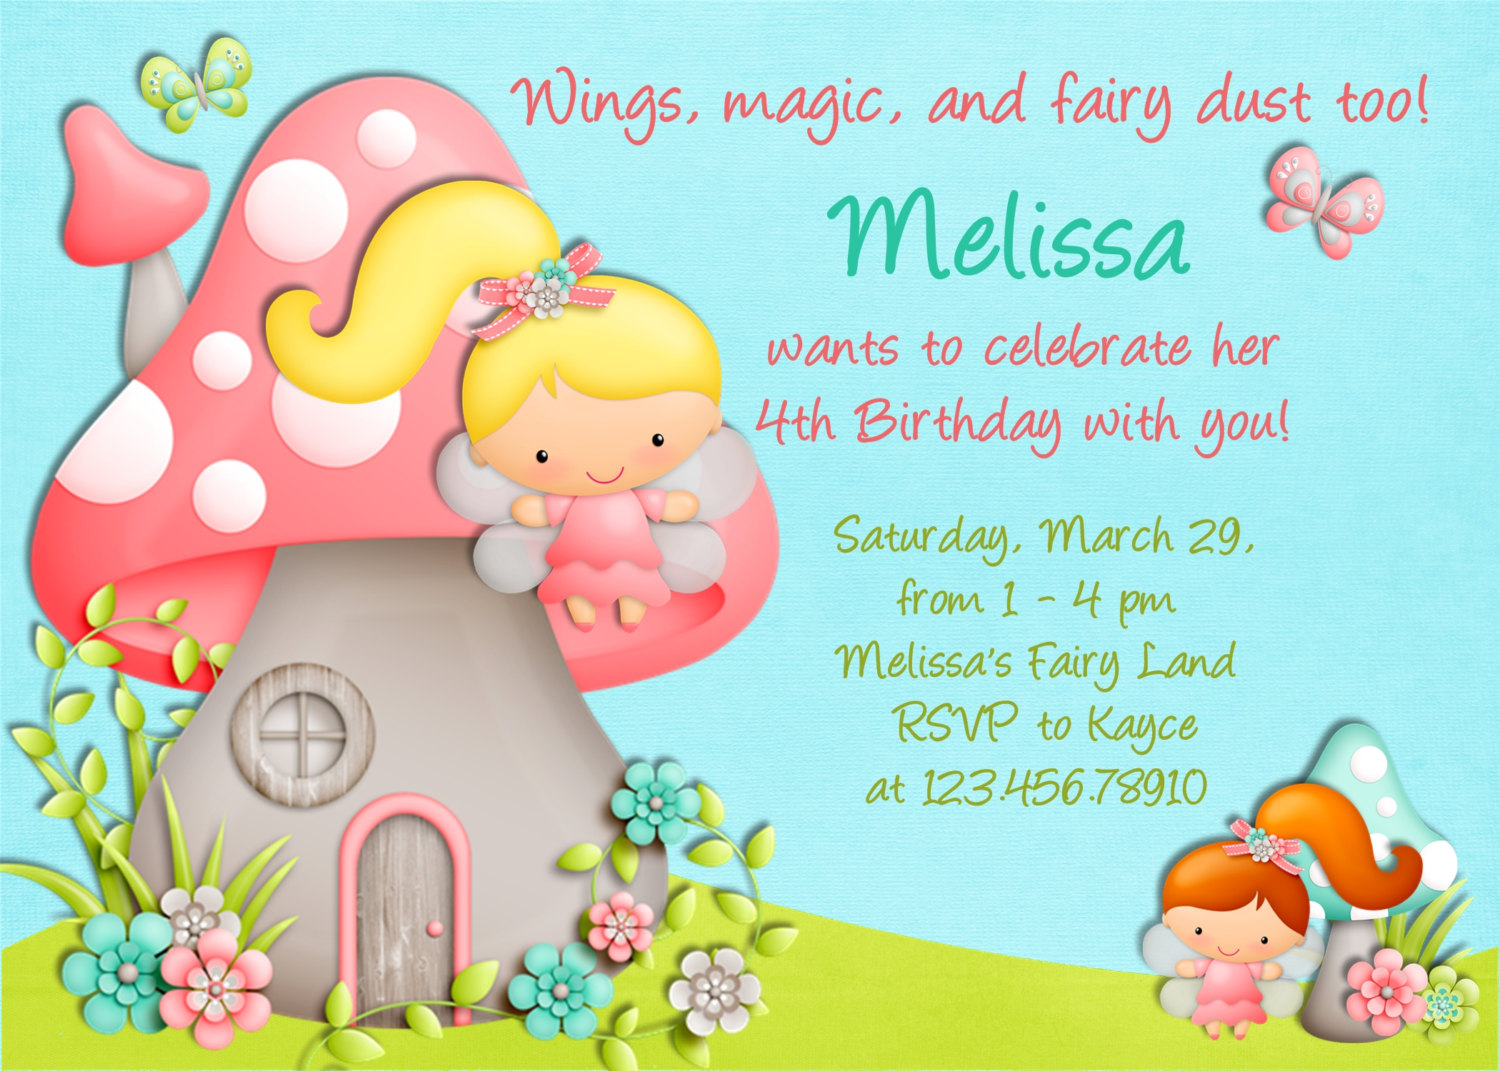 designs for invitation cards birthday ; awesome-sample-invitation-card-for-birthday-mushroom-house-template-designing-picture-decoration-cute-colorful-wording